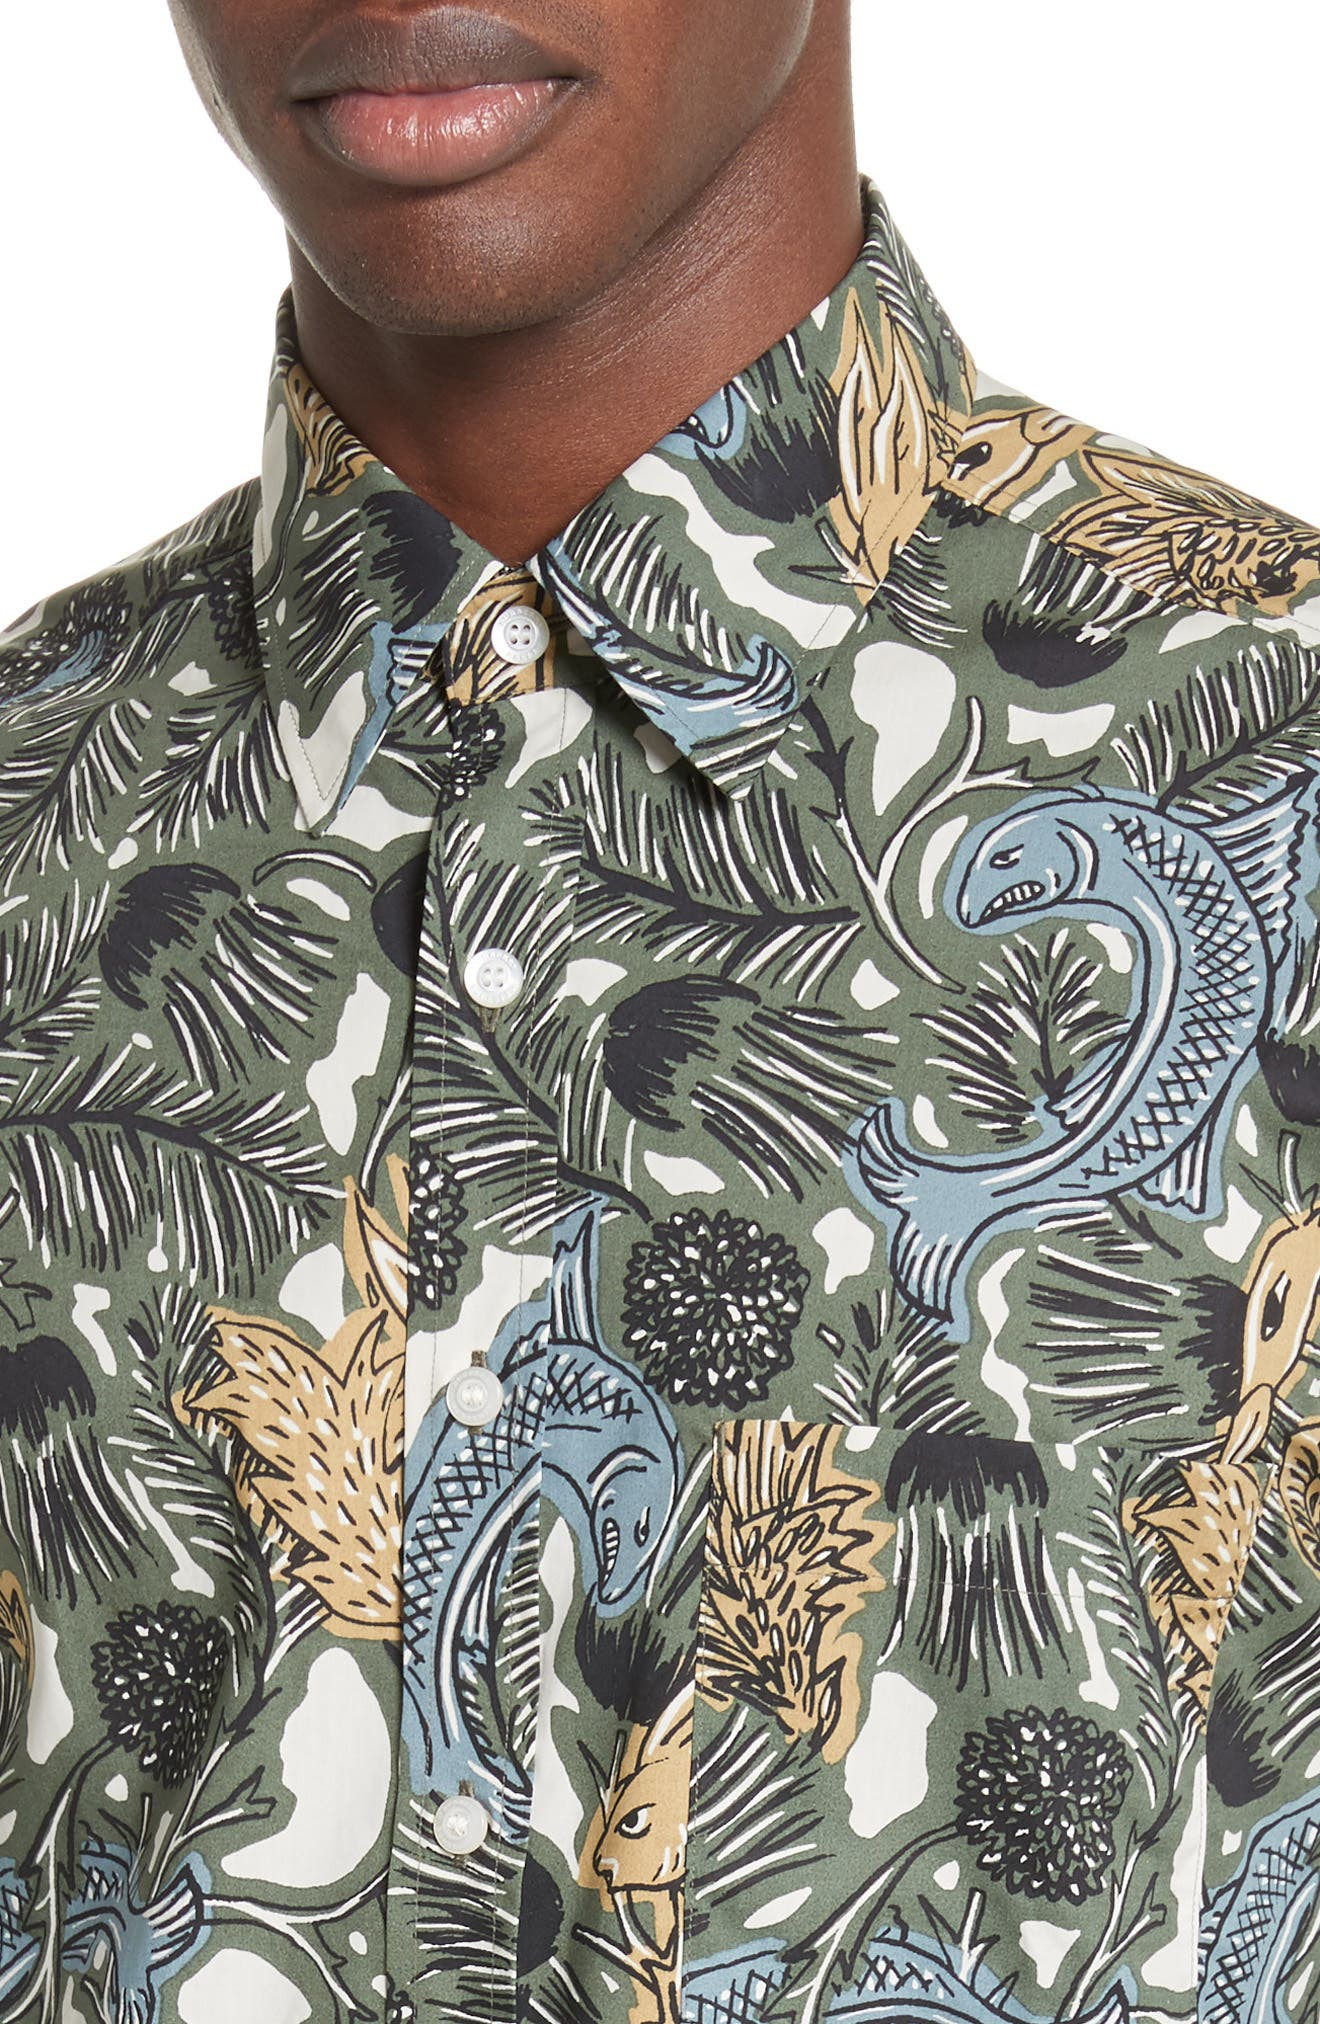 Whinfell Beasts Cotton Sport Shirt,                             Alternate thumbnail 4, color,                             305